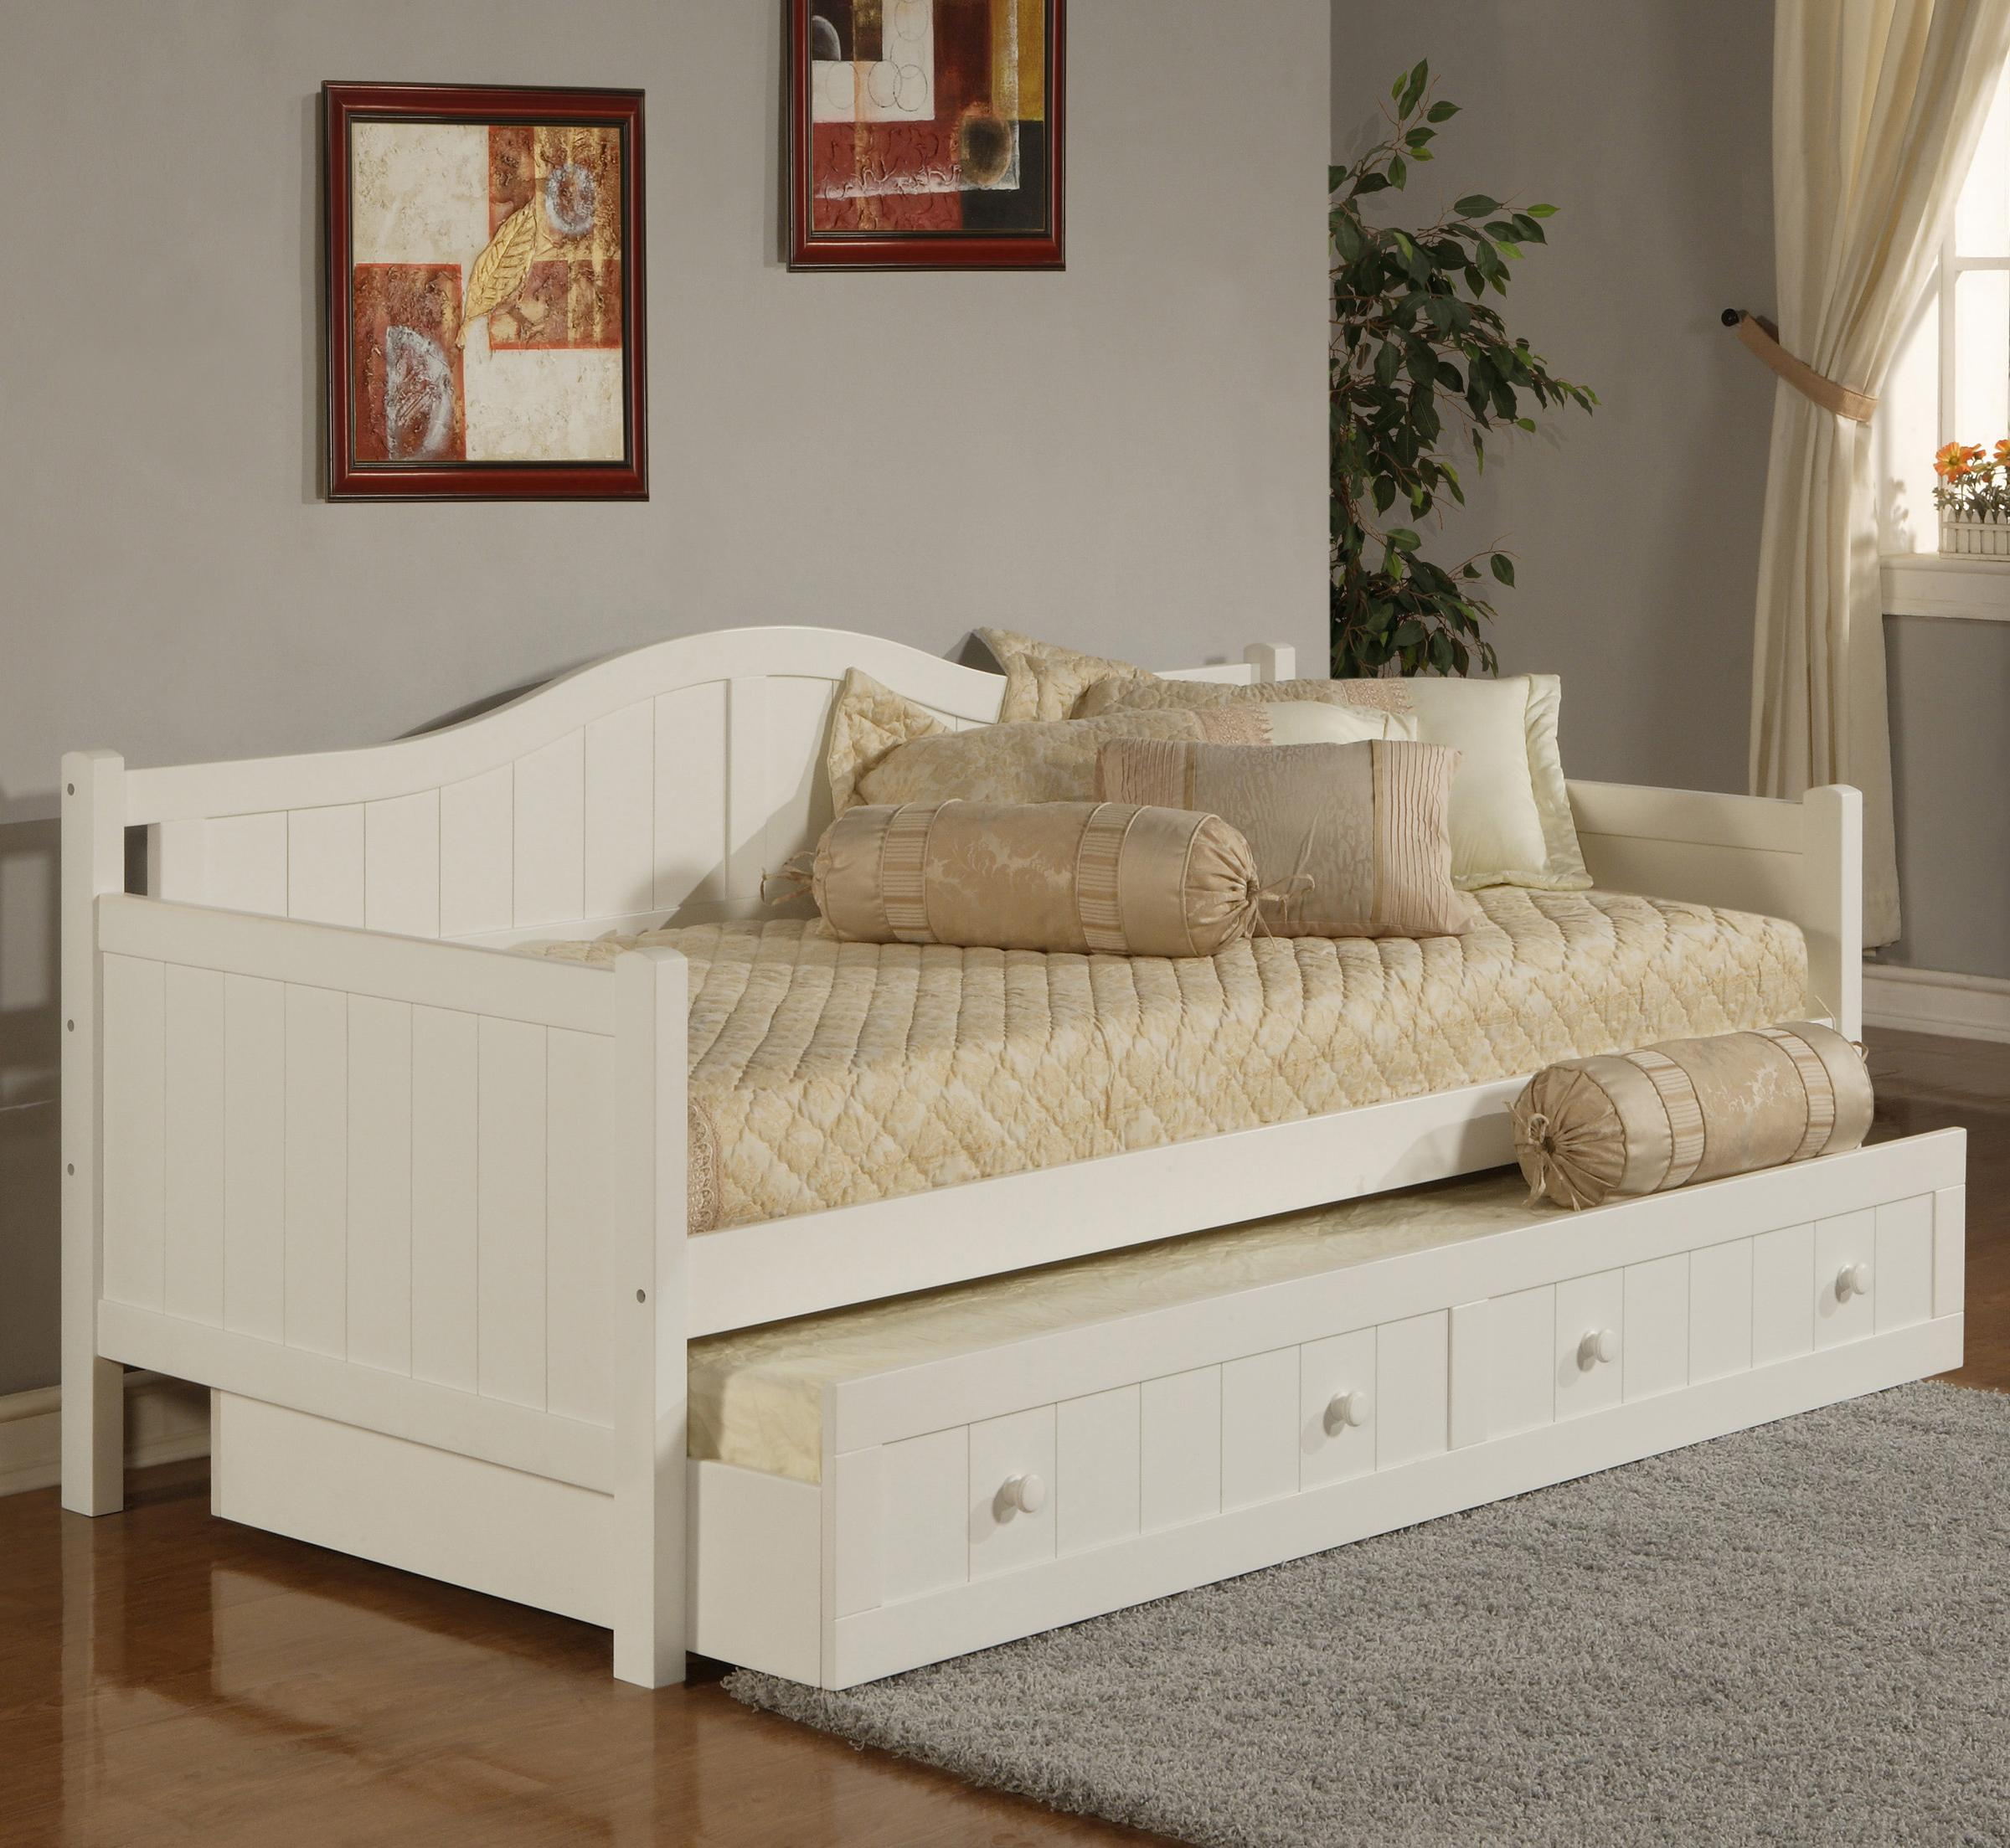 Hillsdale Daybeds Twin Staci Daybed with Trundle - Item Number: 1525DBT